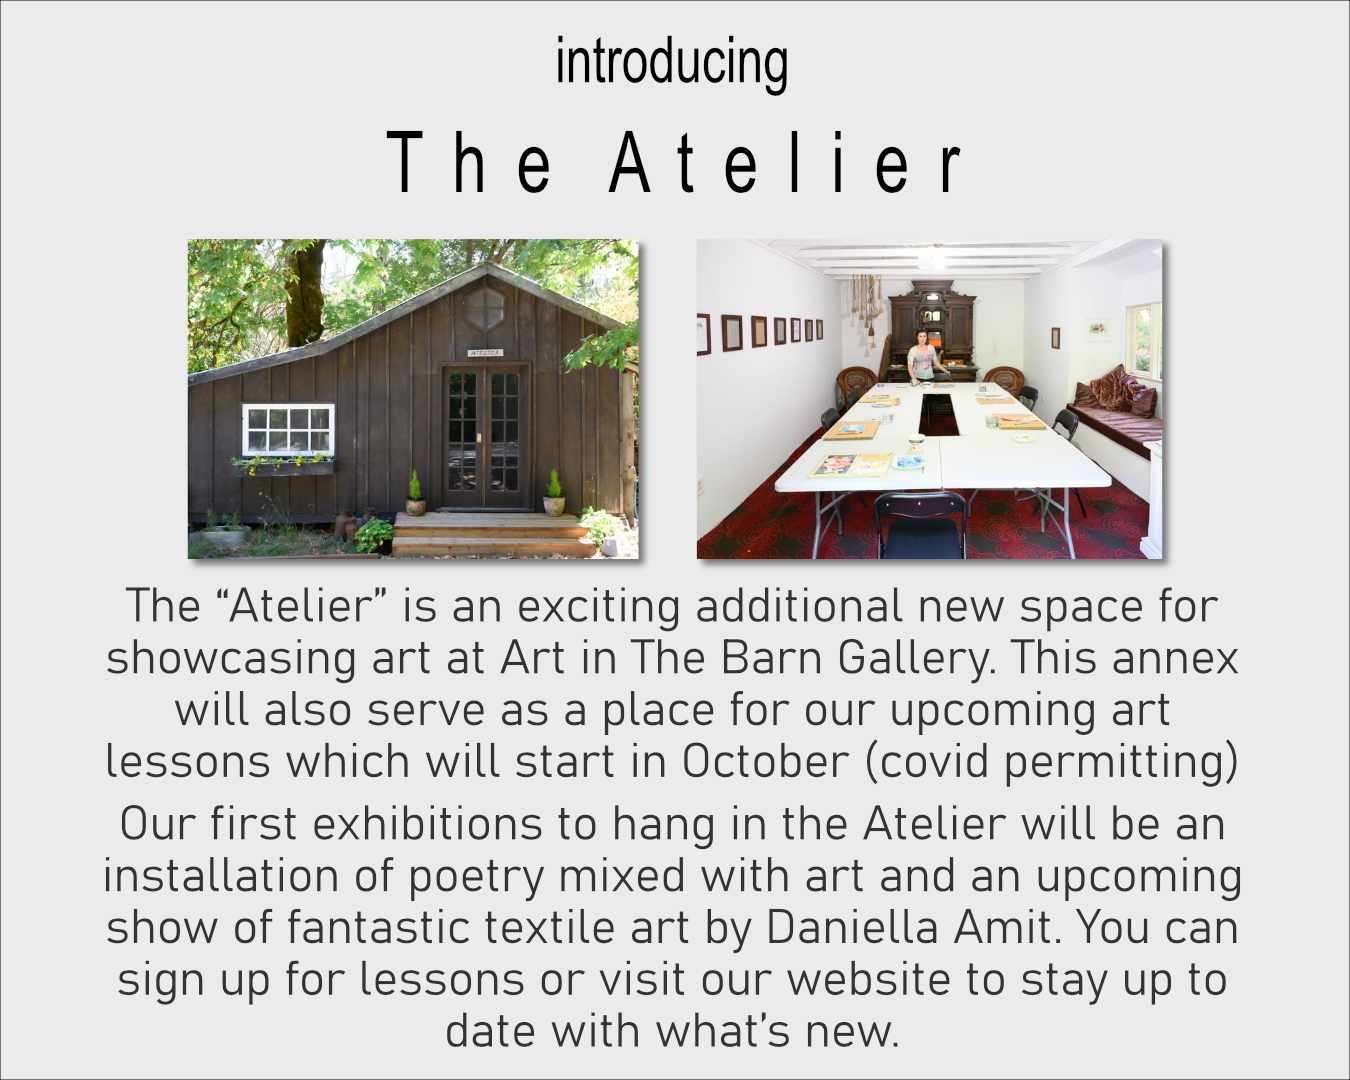 introducing the atelier